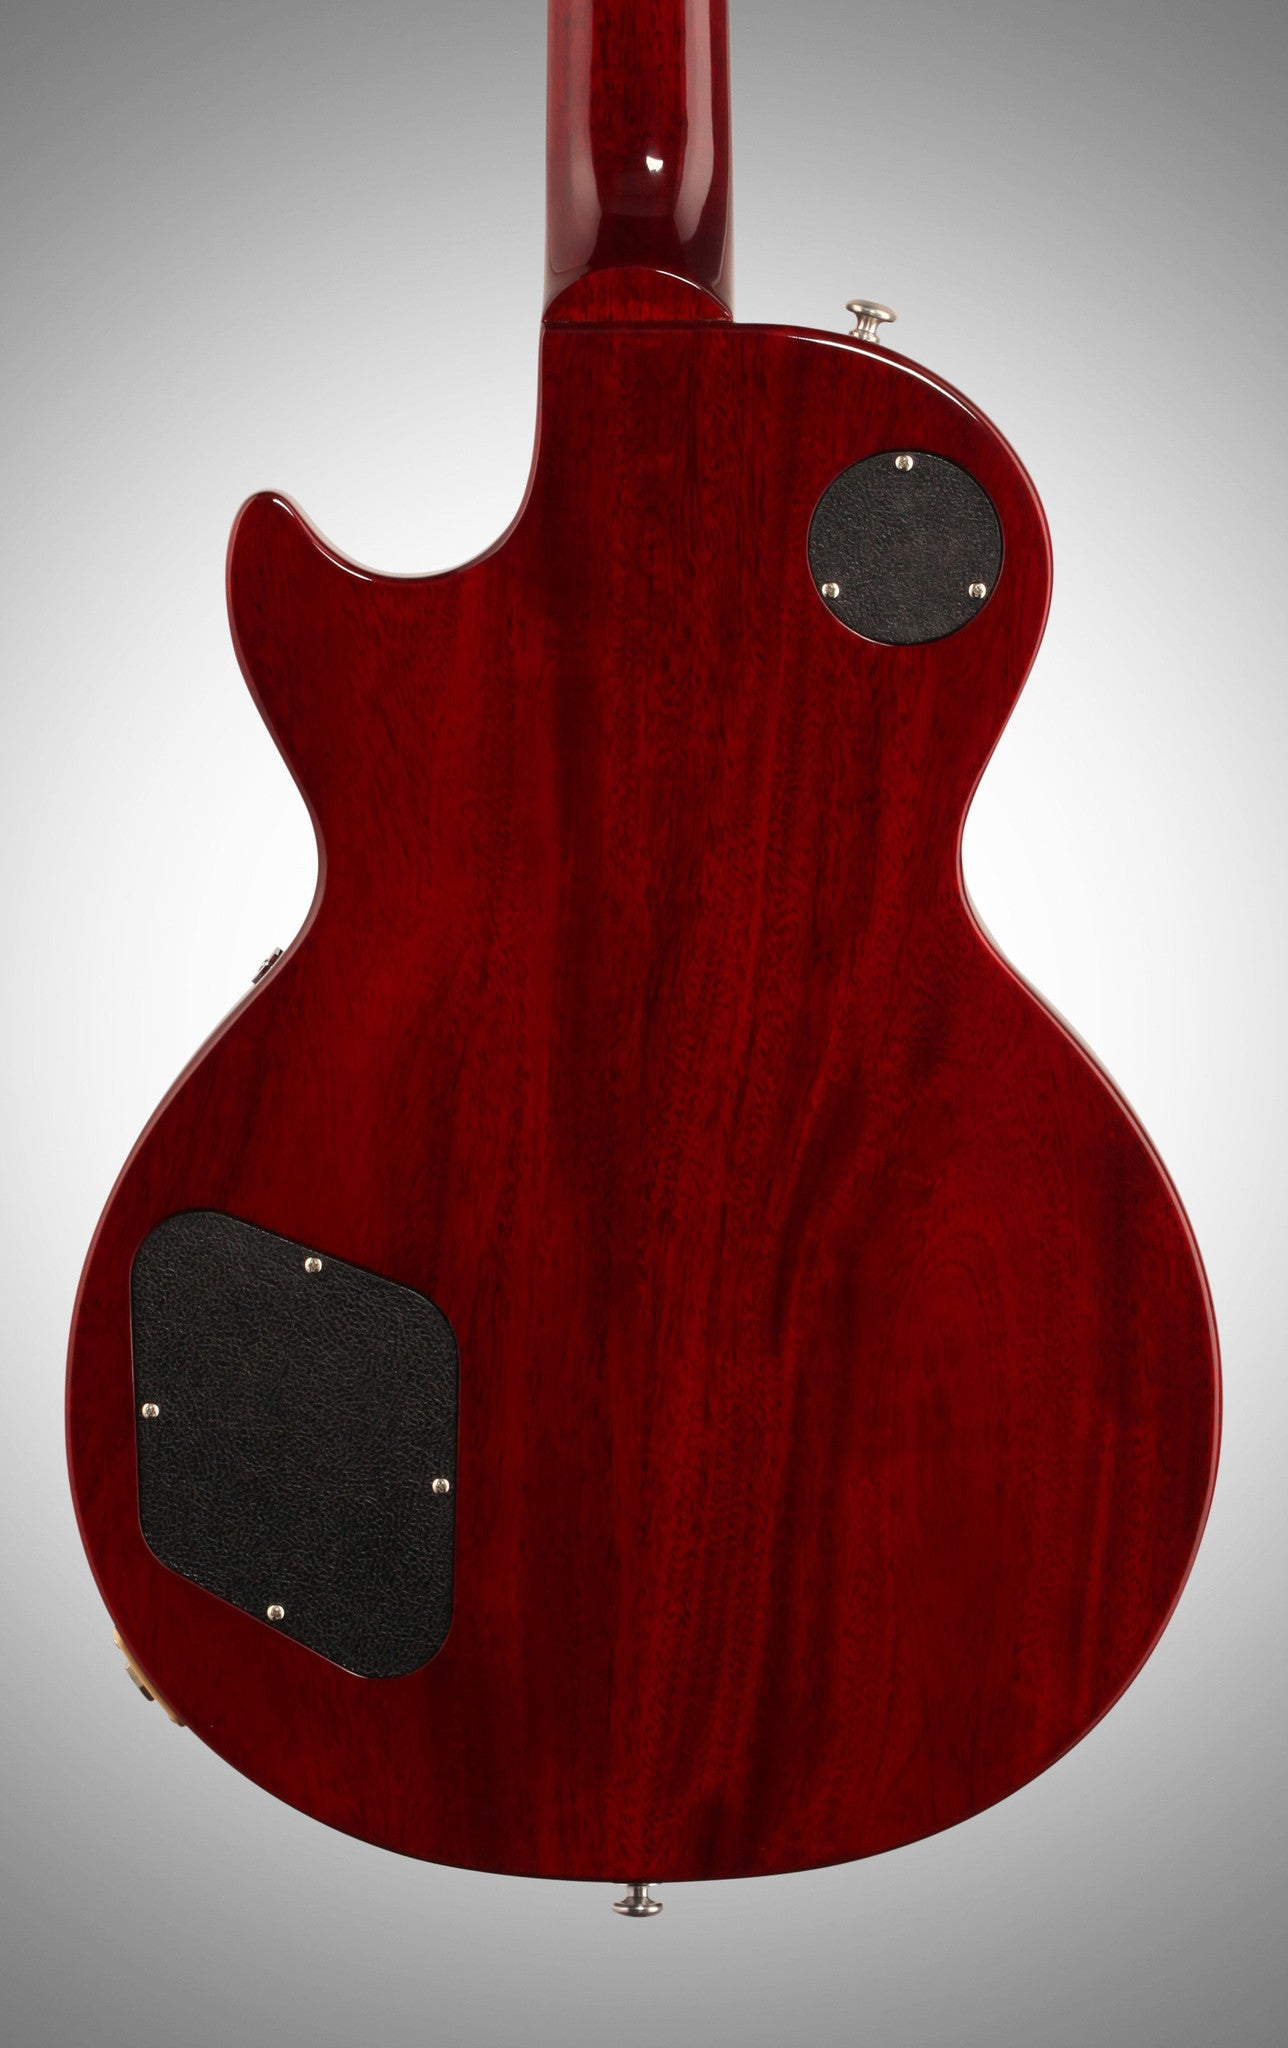 Gibson 2016 Les Paul Studio T Electric Guitar (with Case), Wine Red Gibson - HIENDGUITAR.COM